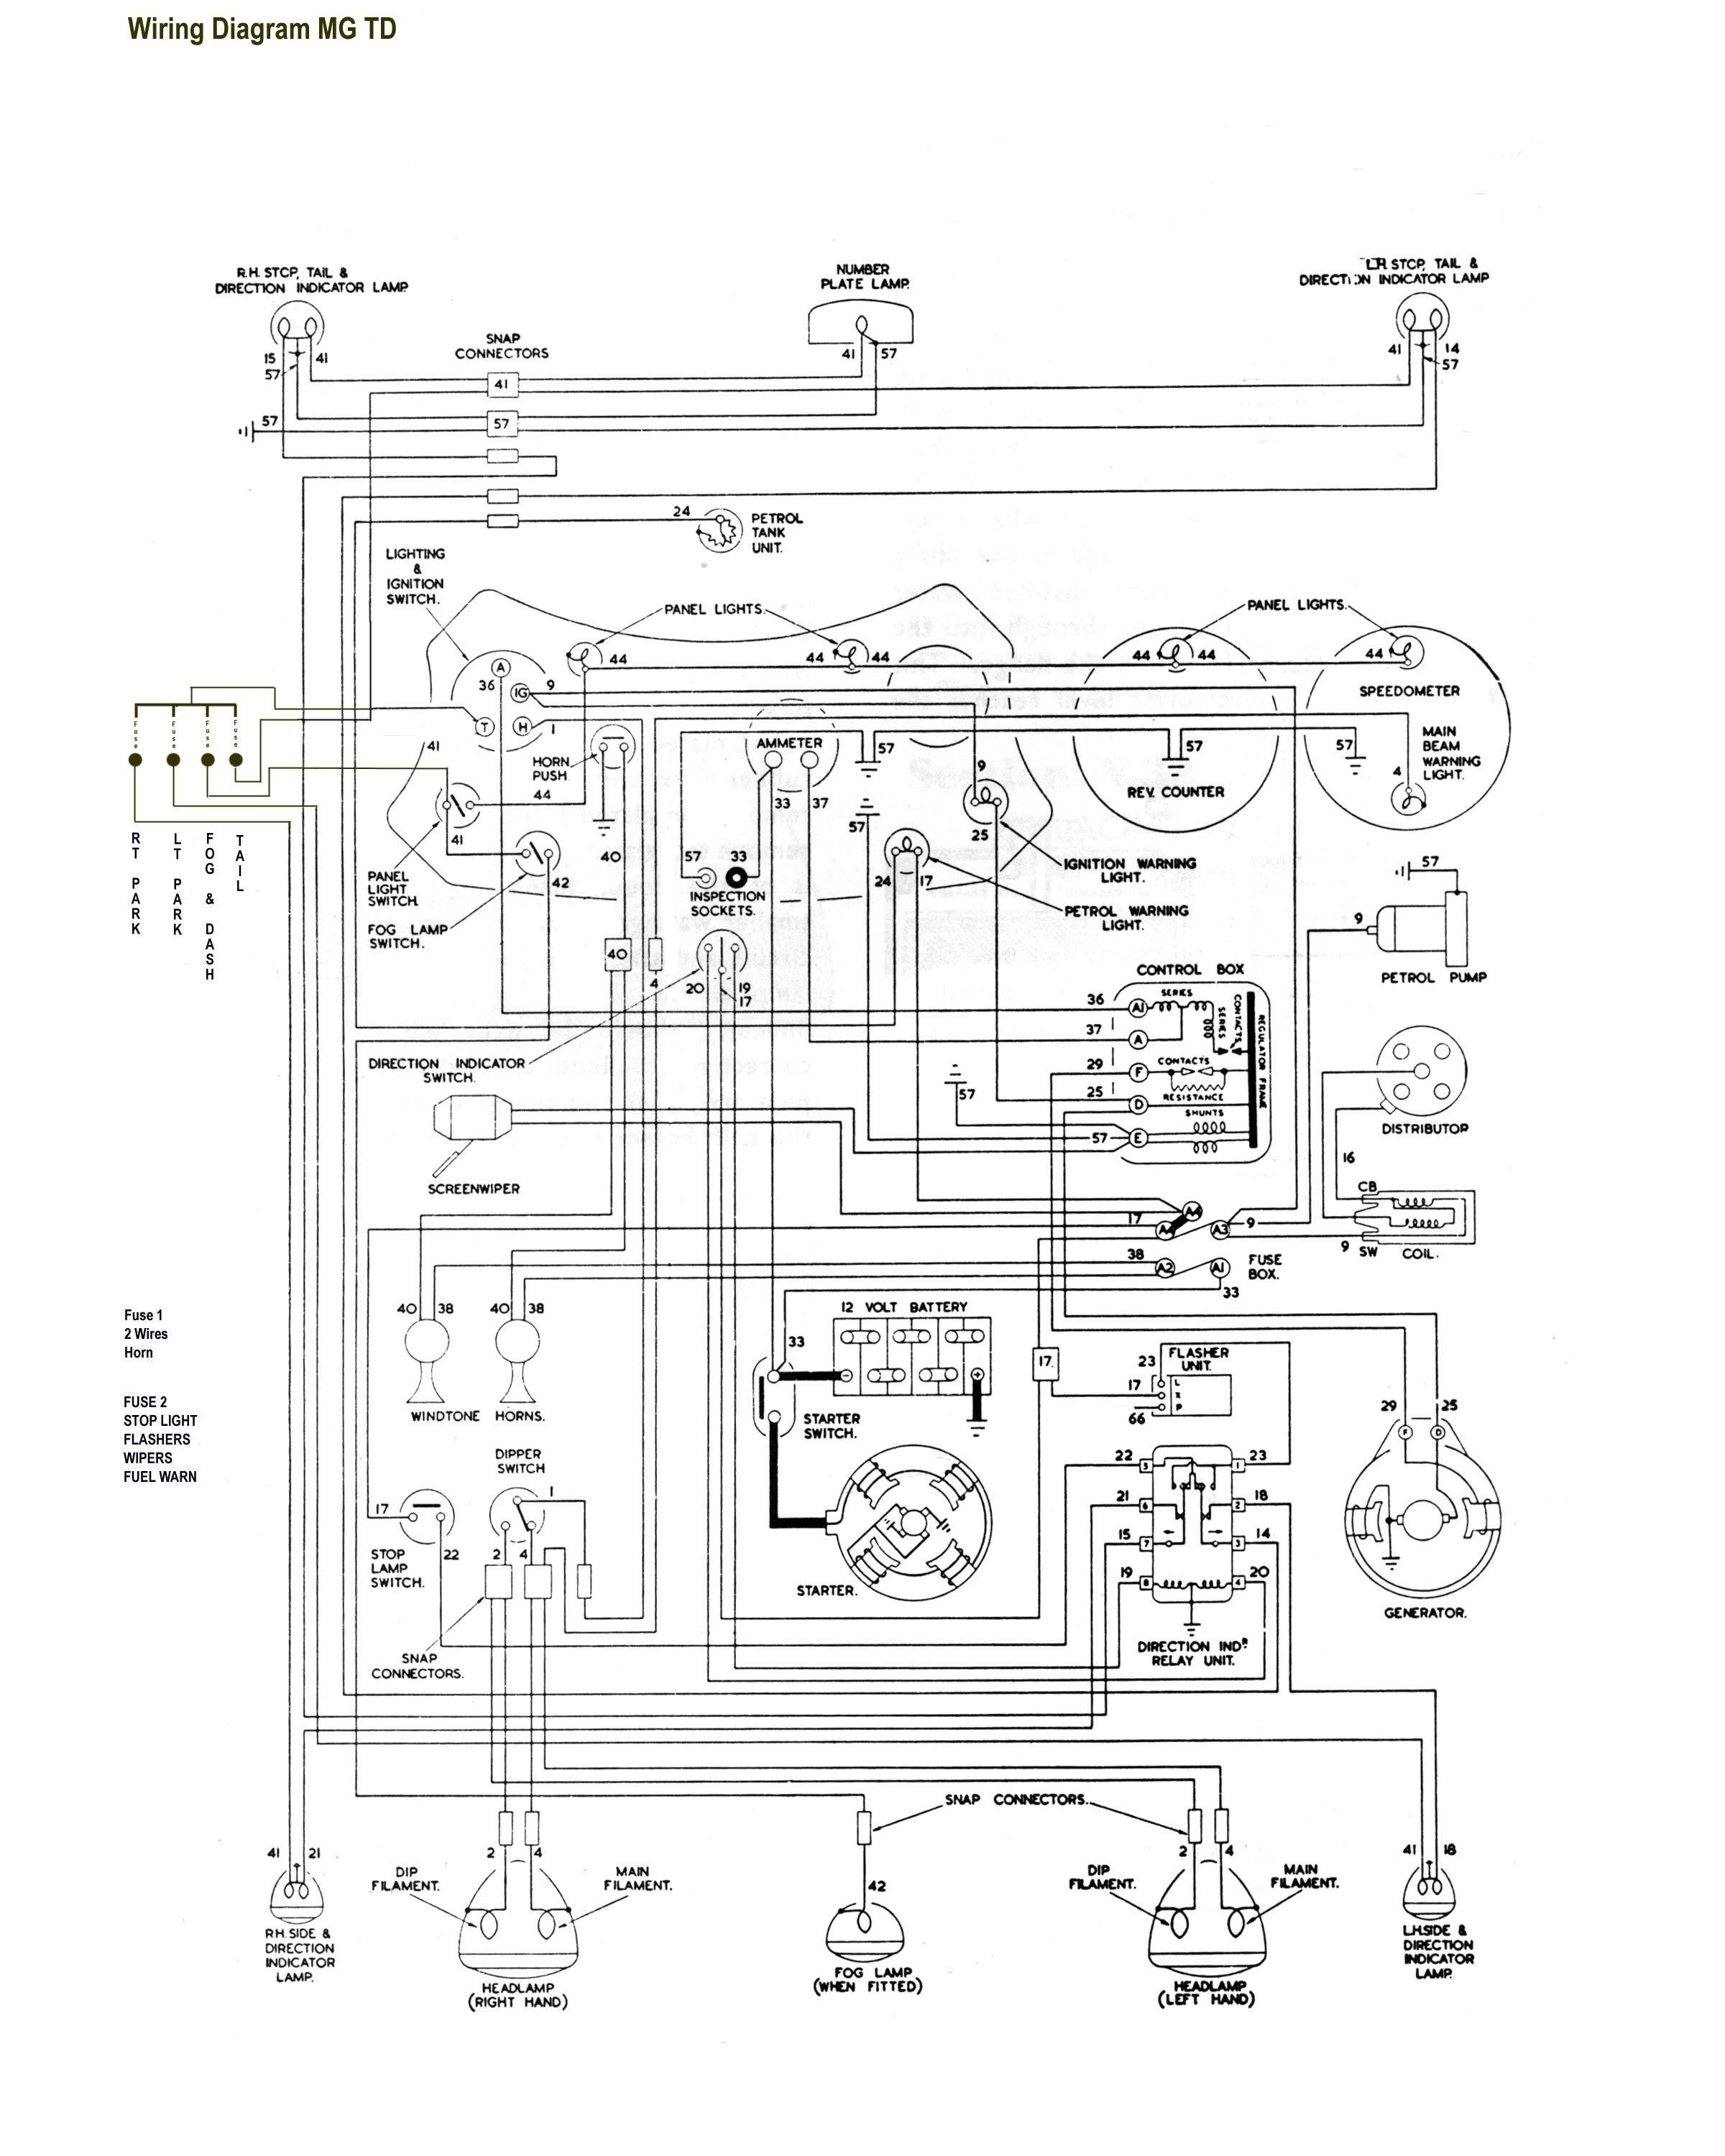 1940 buick wiring diagram 1940 wiring diagrams description merzwiring buick wiring diagram